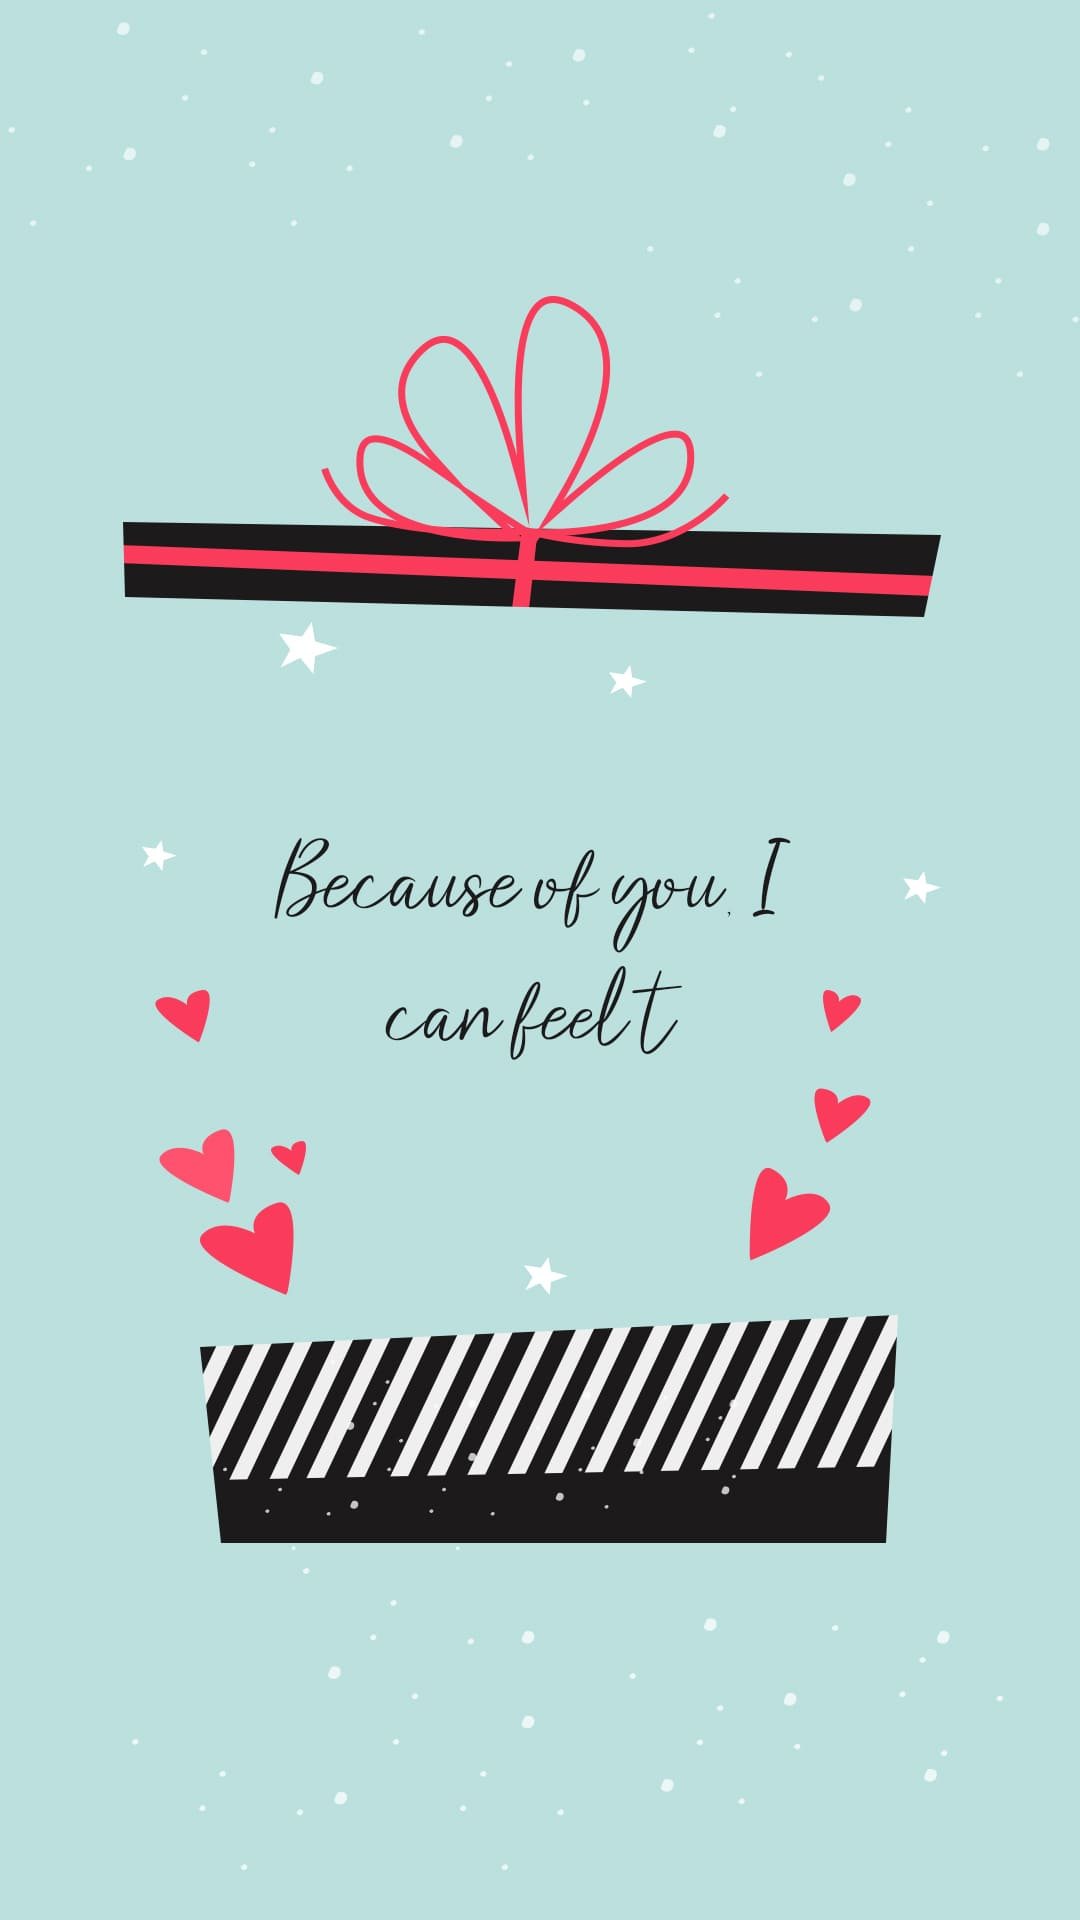 40+ Awesome Valentine's Day Quotes 2021 😍 - valentines day quotes for him 10